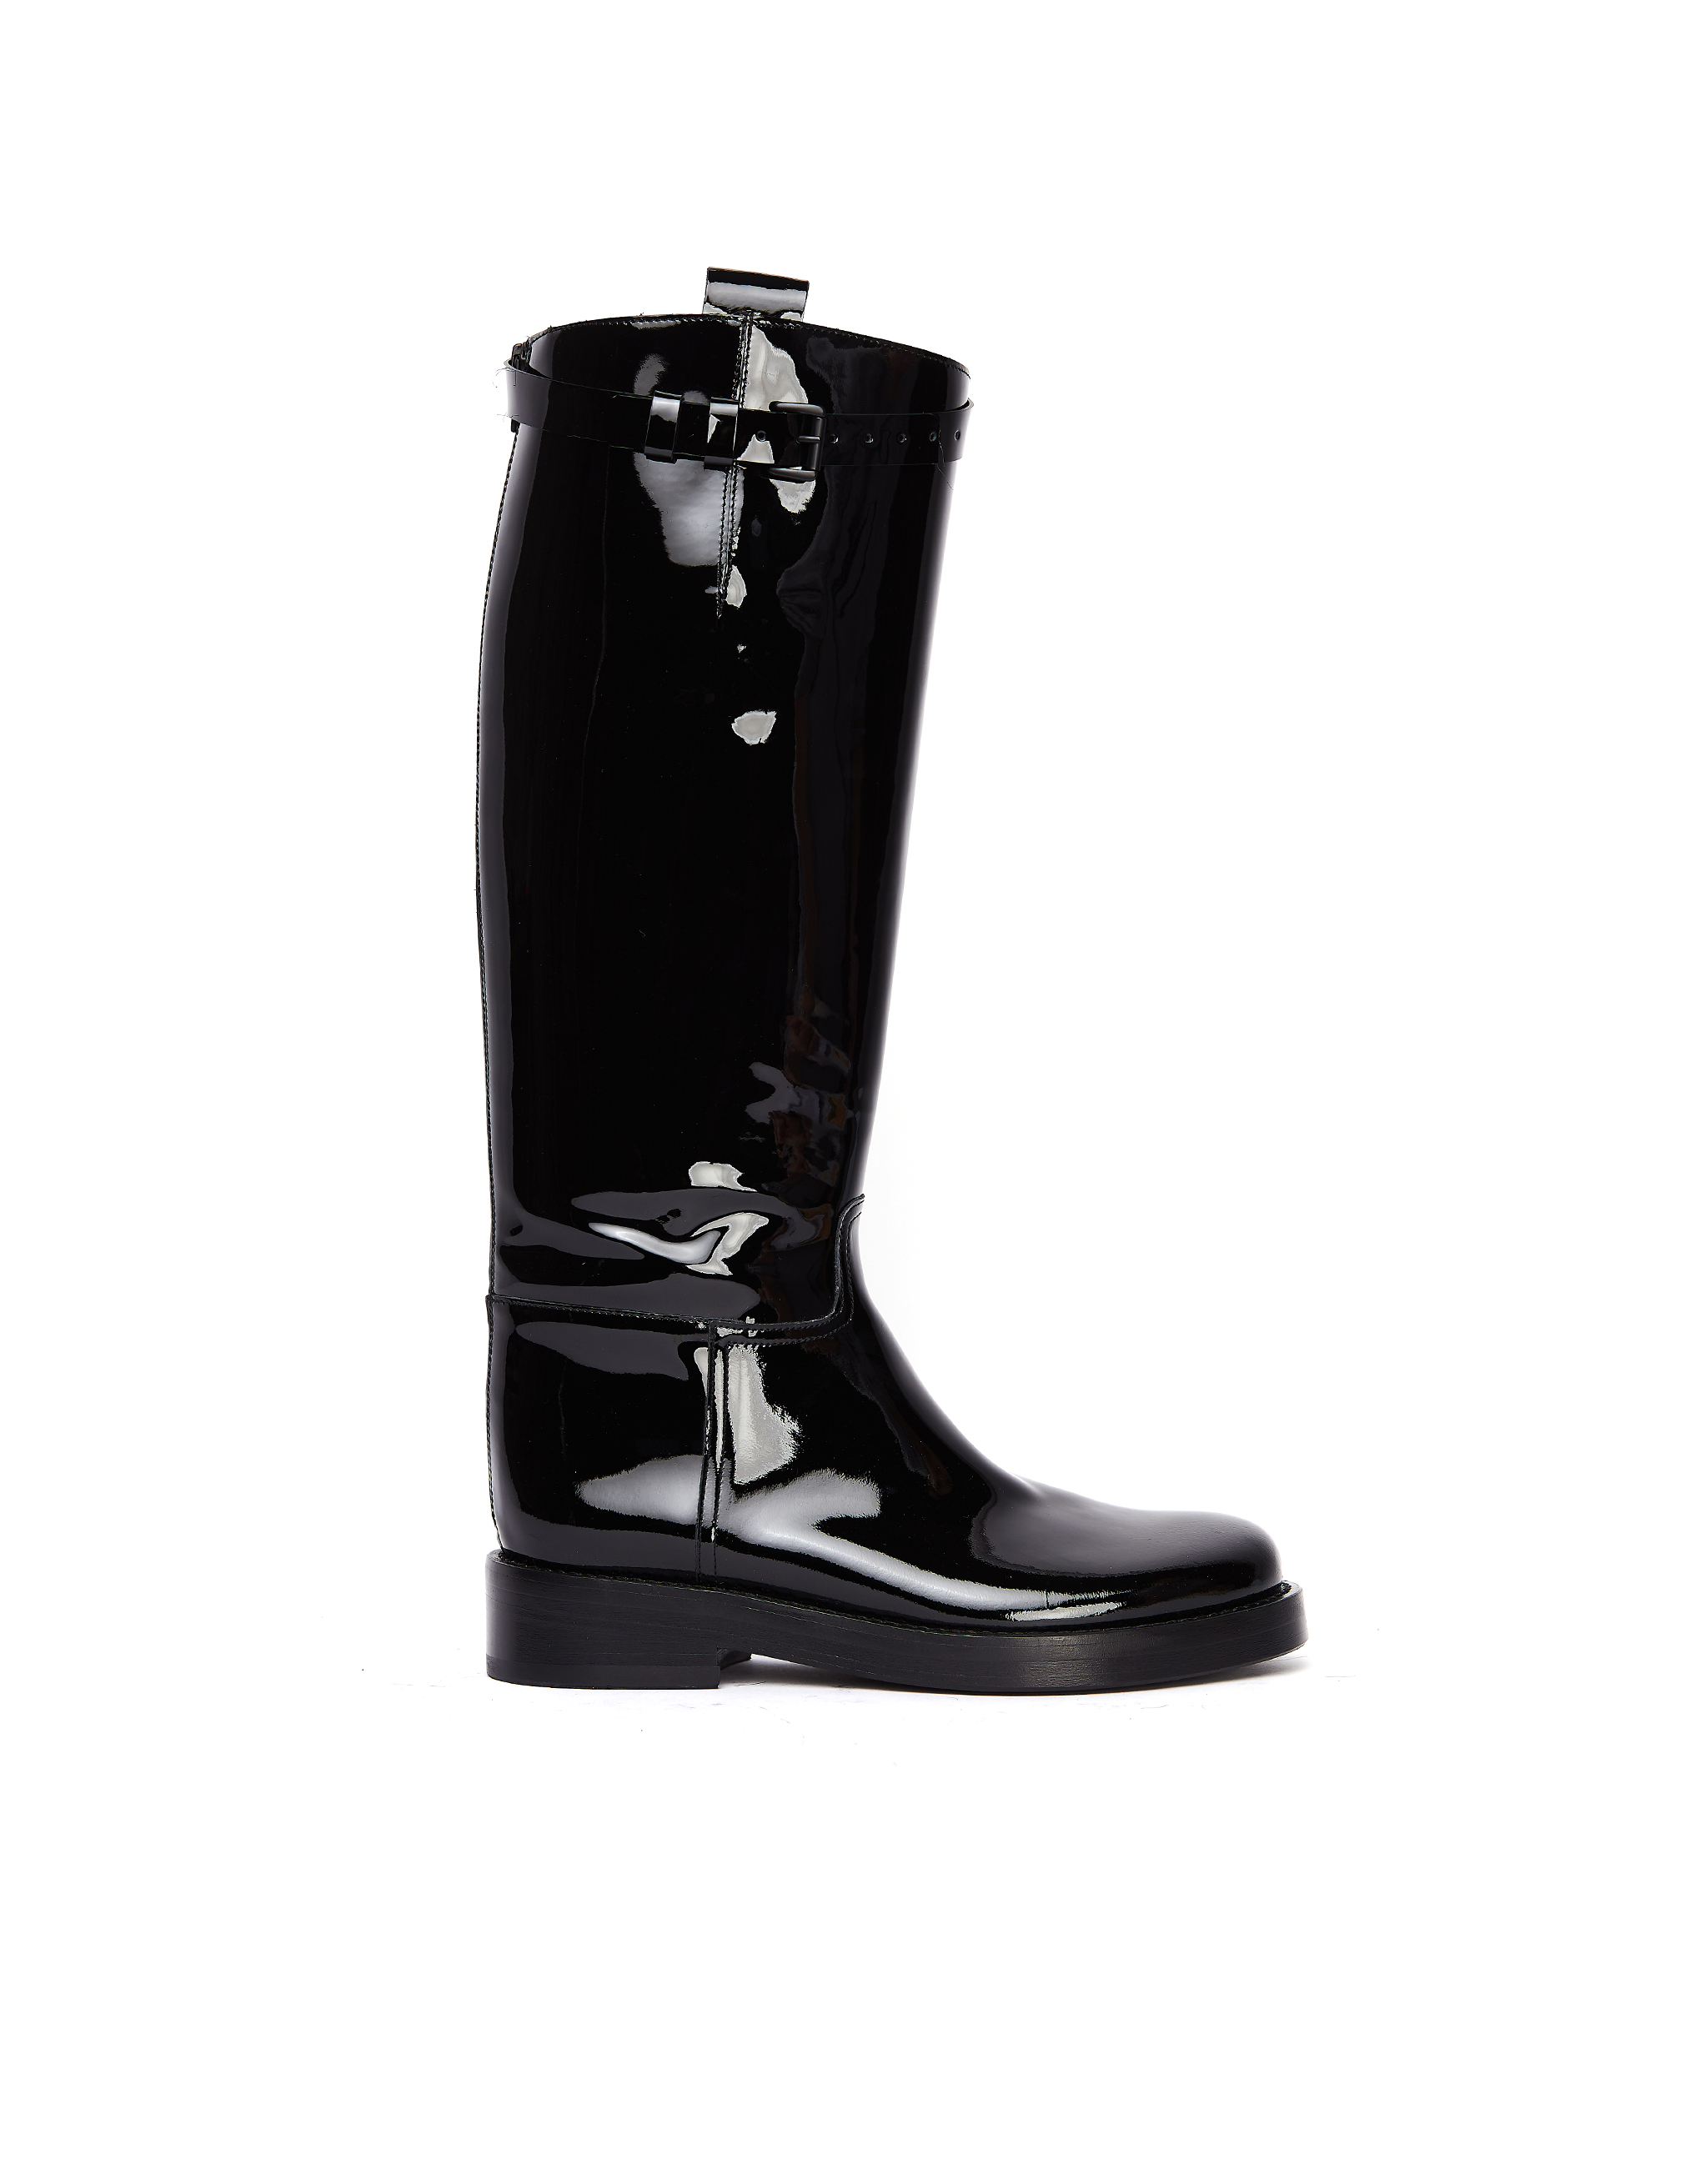 Ann Demeulemeester Black Patent Leather Boots